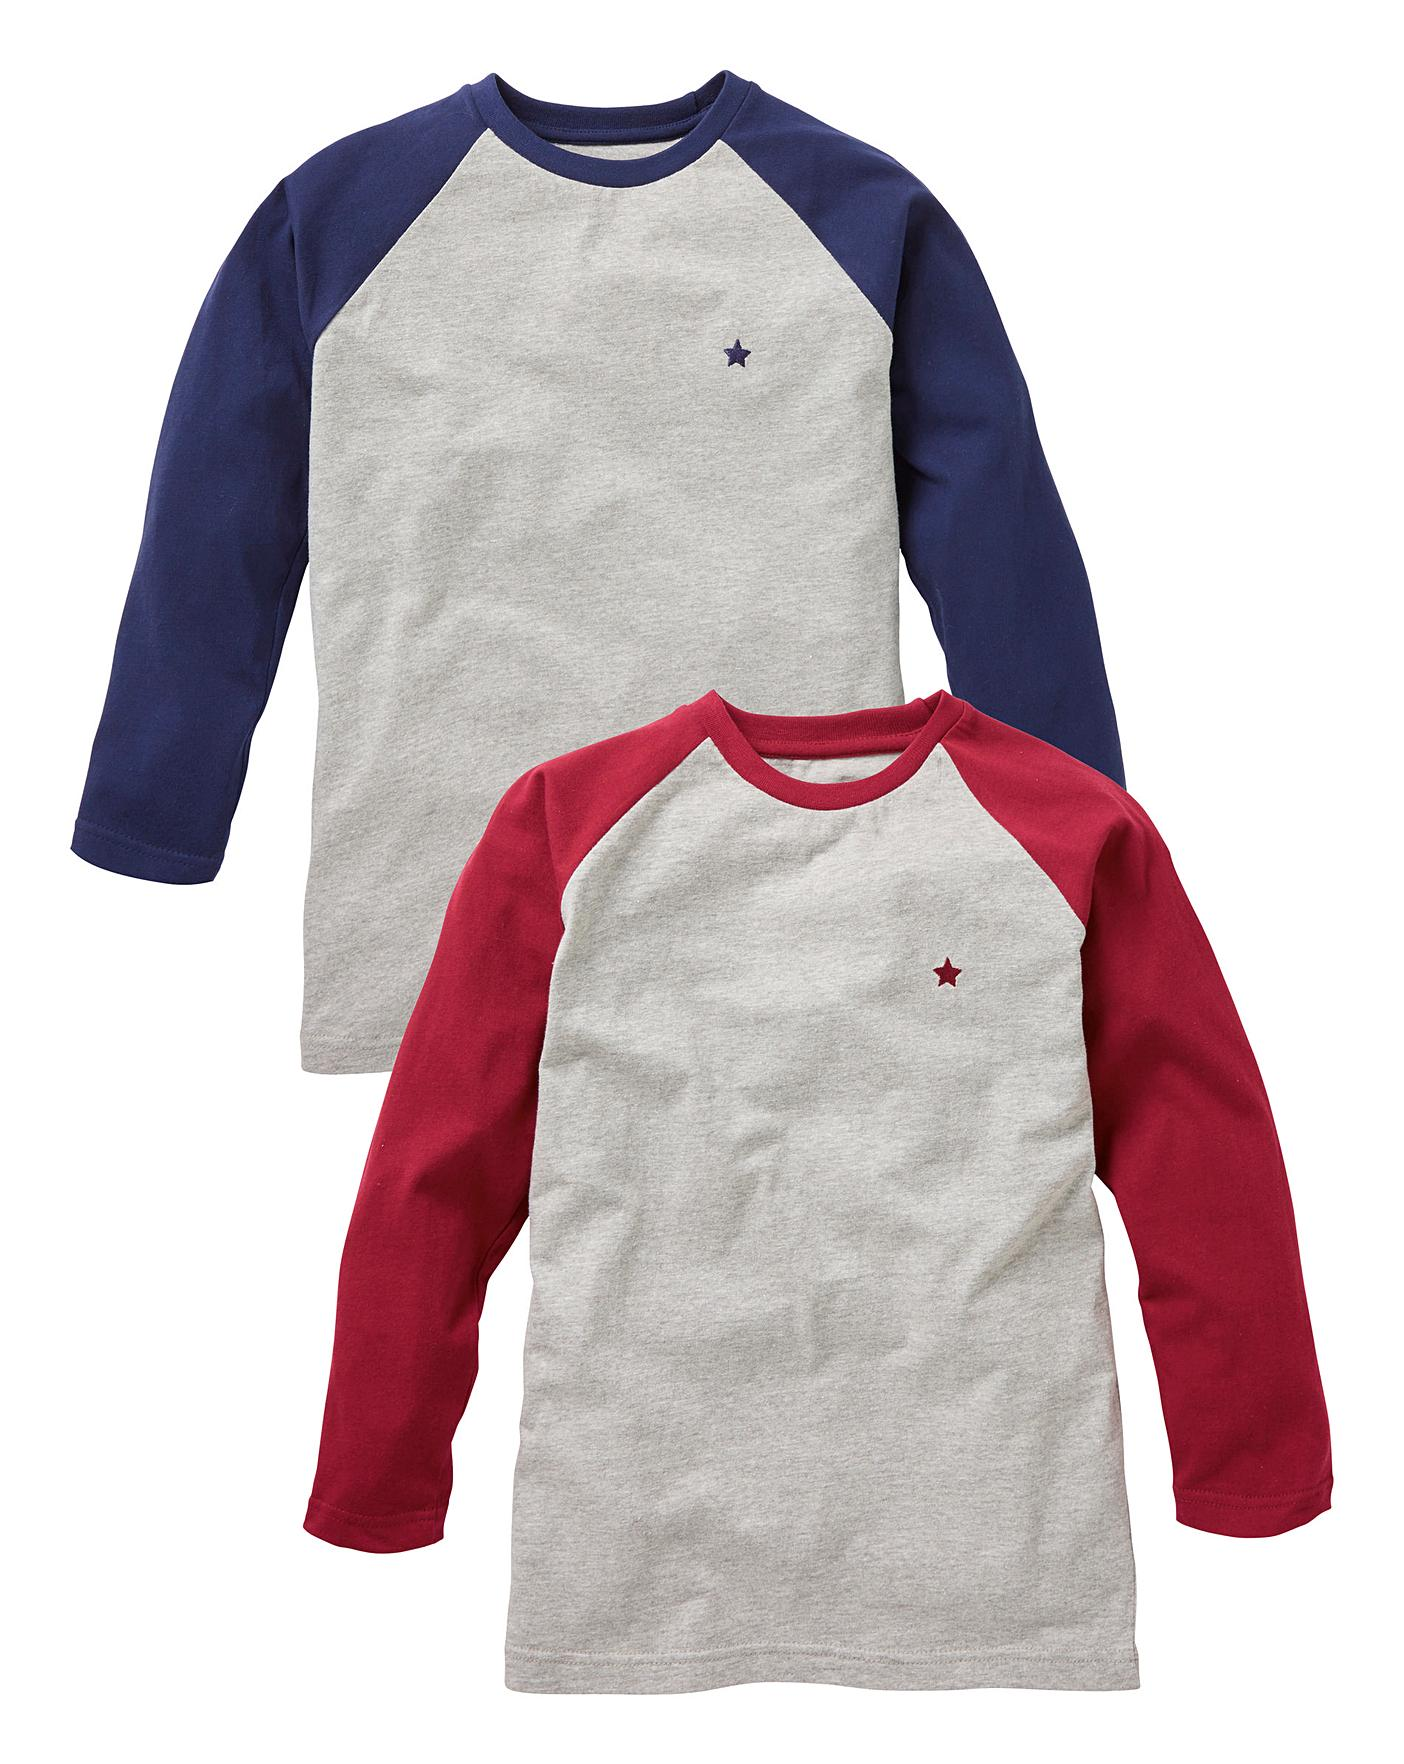 fc69095c56 KD Boys Pack of Two L/S Raglan T-Shirts | The Kids Division